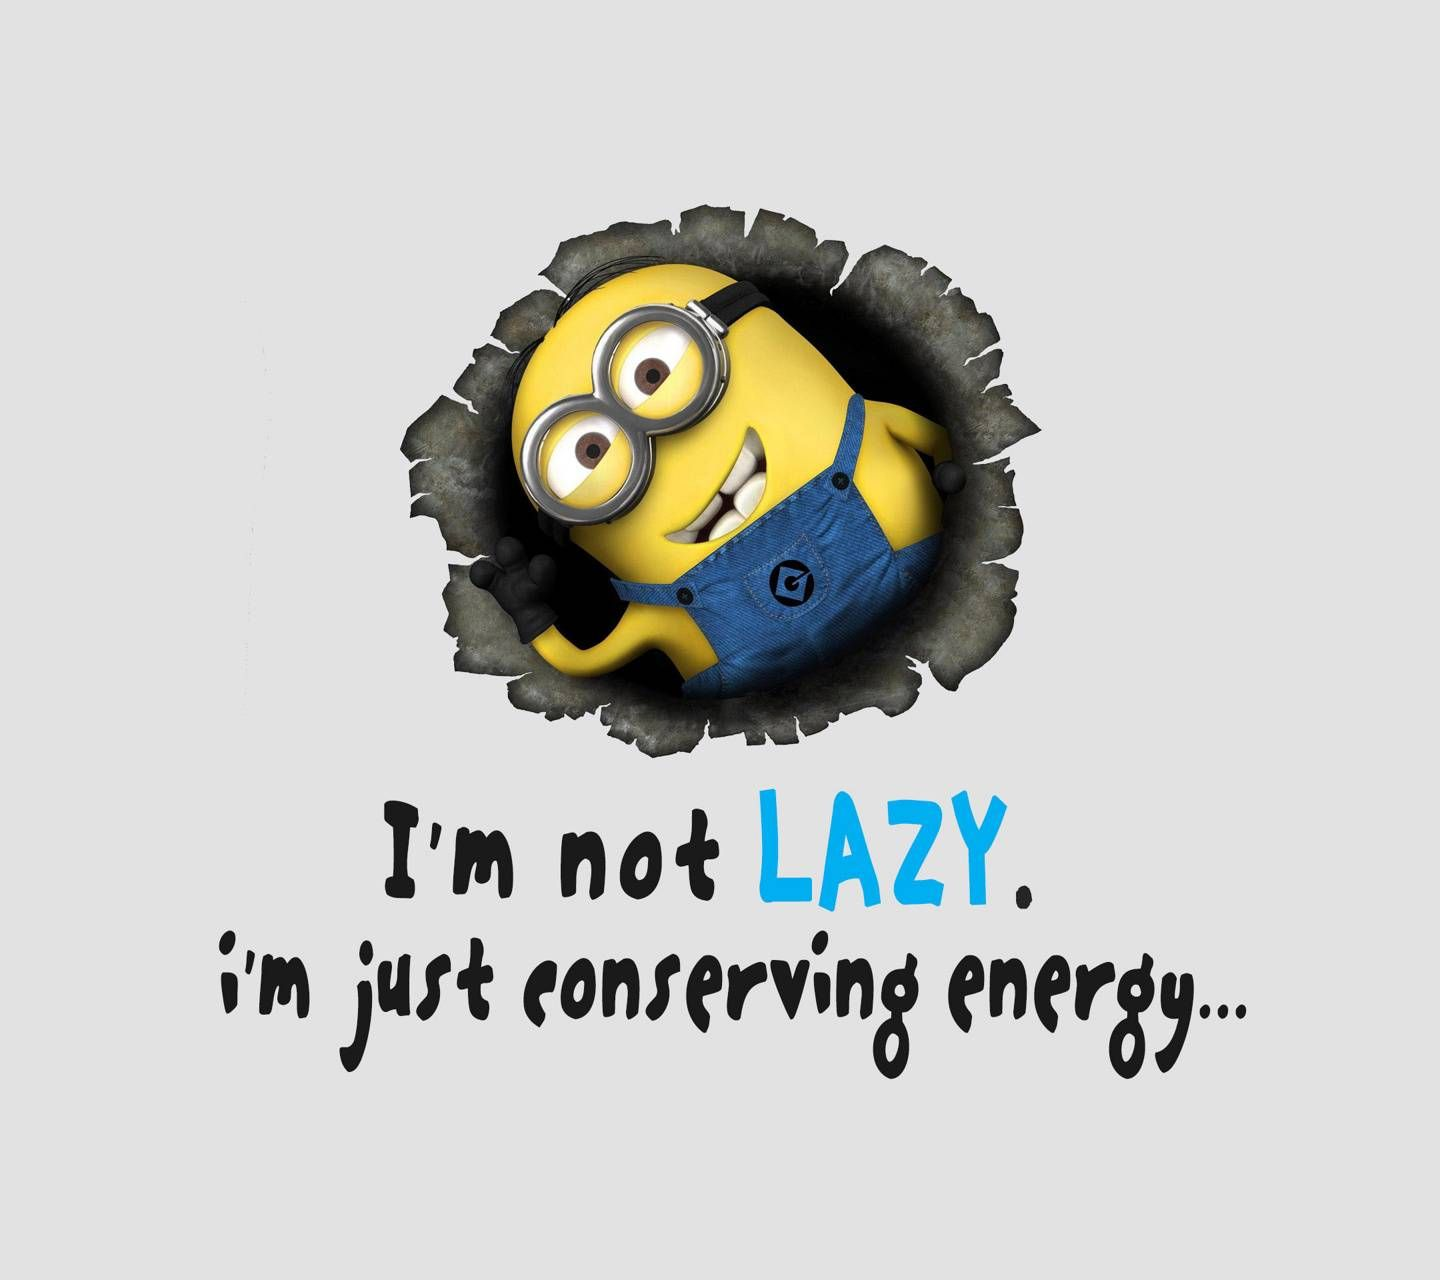 Pin By Markruse17 On Wallpaper Ponsel Minions Funny Minions Funny Images Funny Minion Quotes